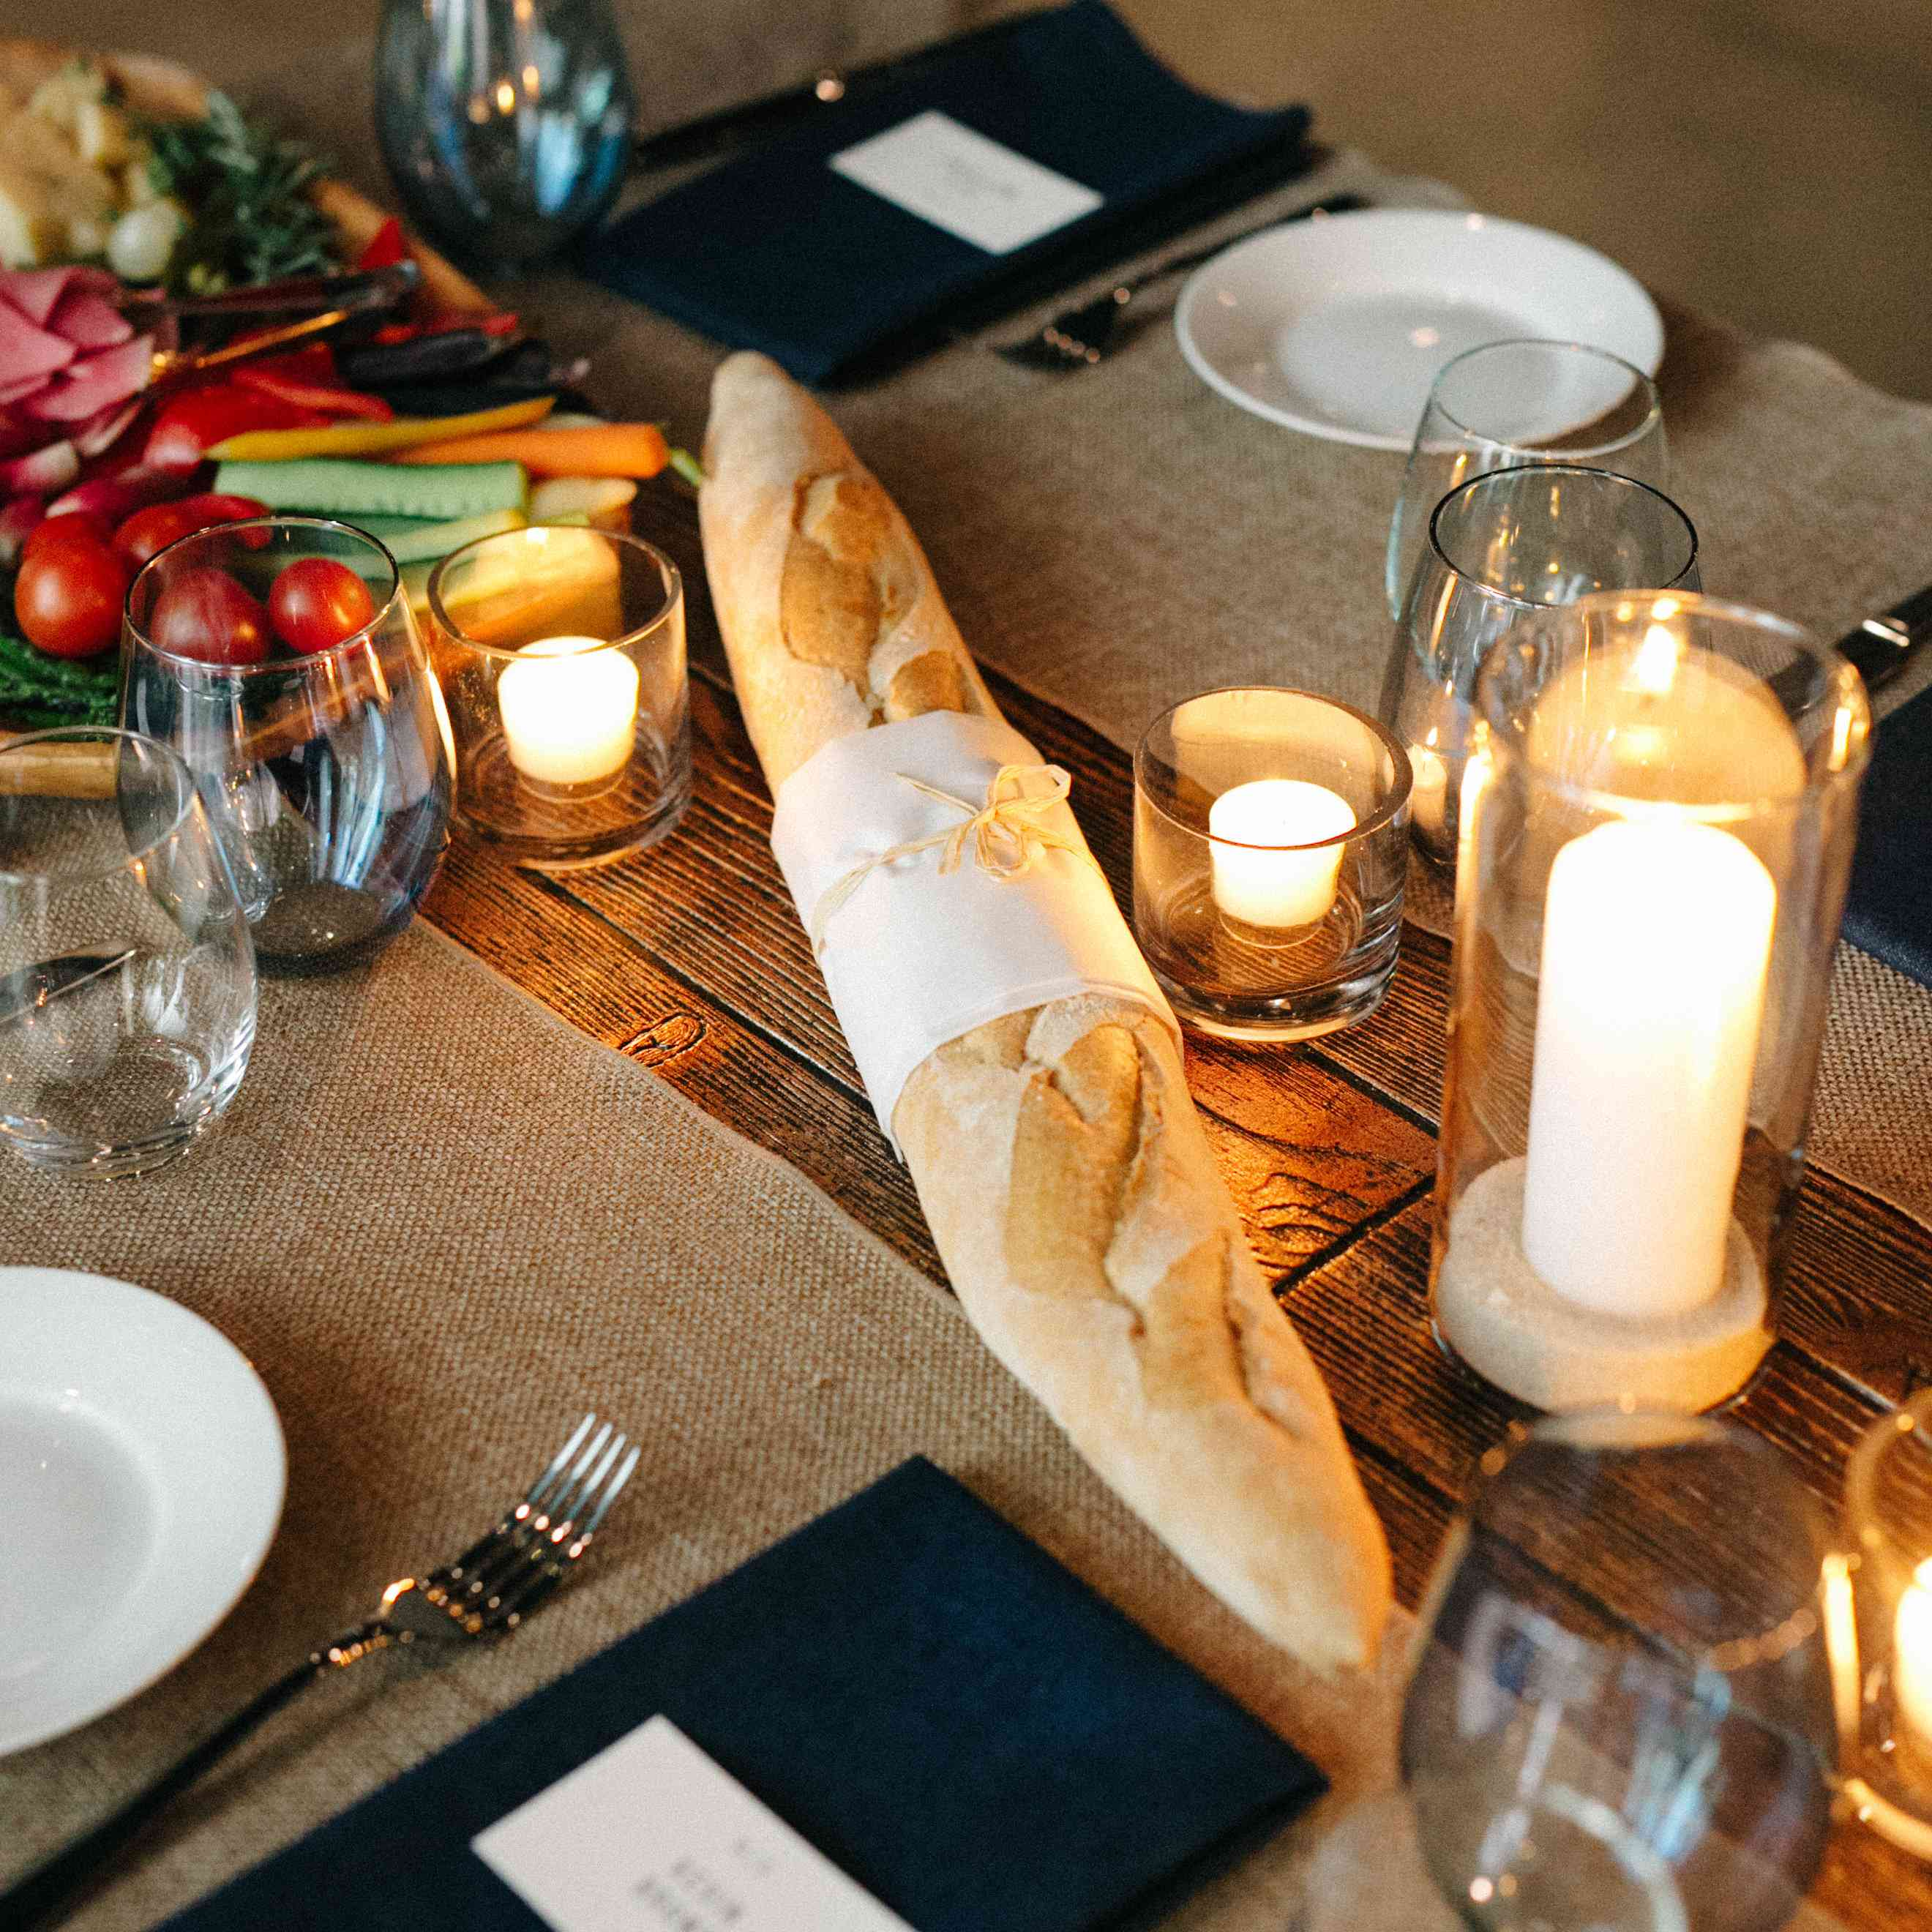 <p>Baguette on table</p><br><br>